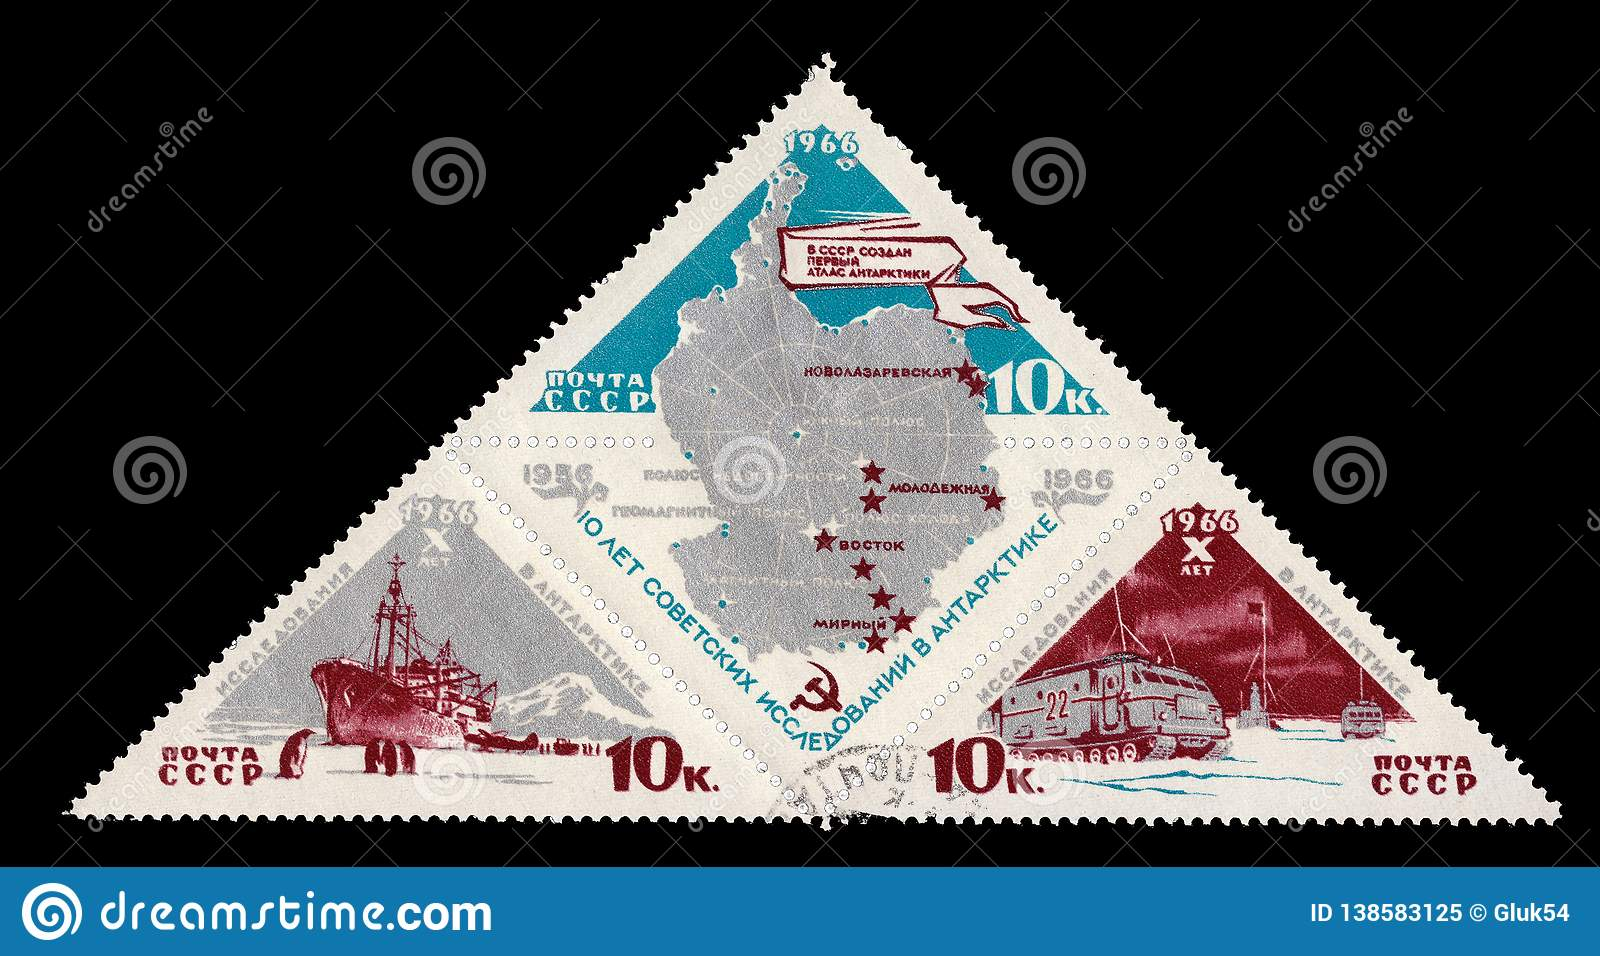 Ussr- Soviet Union circa 1966: Soviet postage stamp Mark dedicated to the tenth anniversary of the beginning of the development of